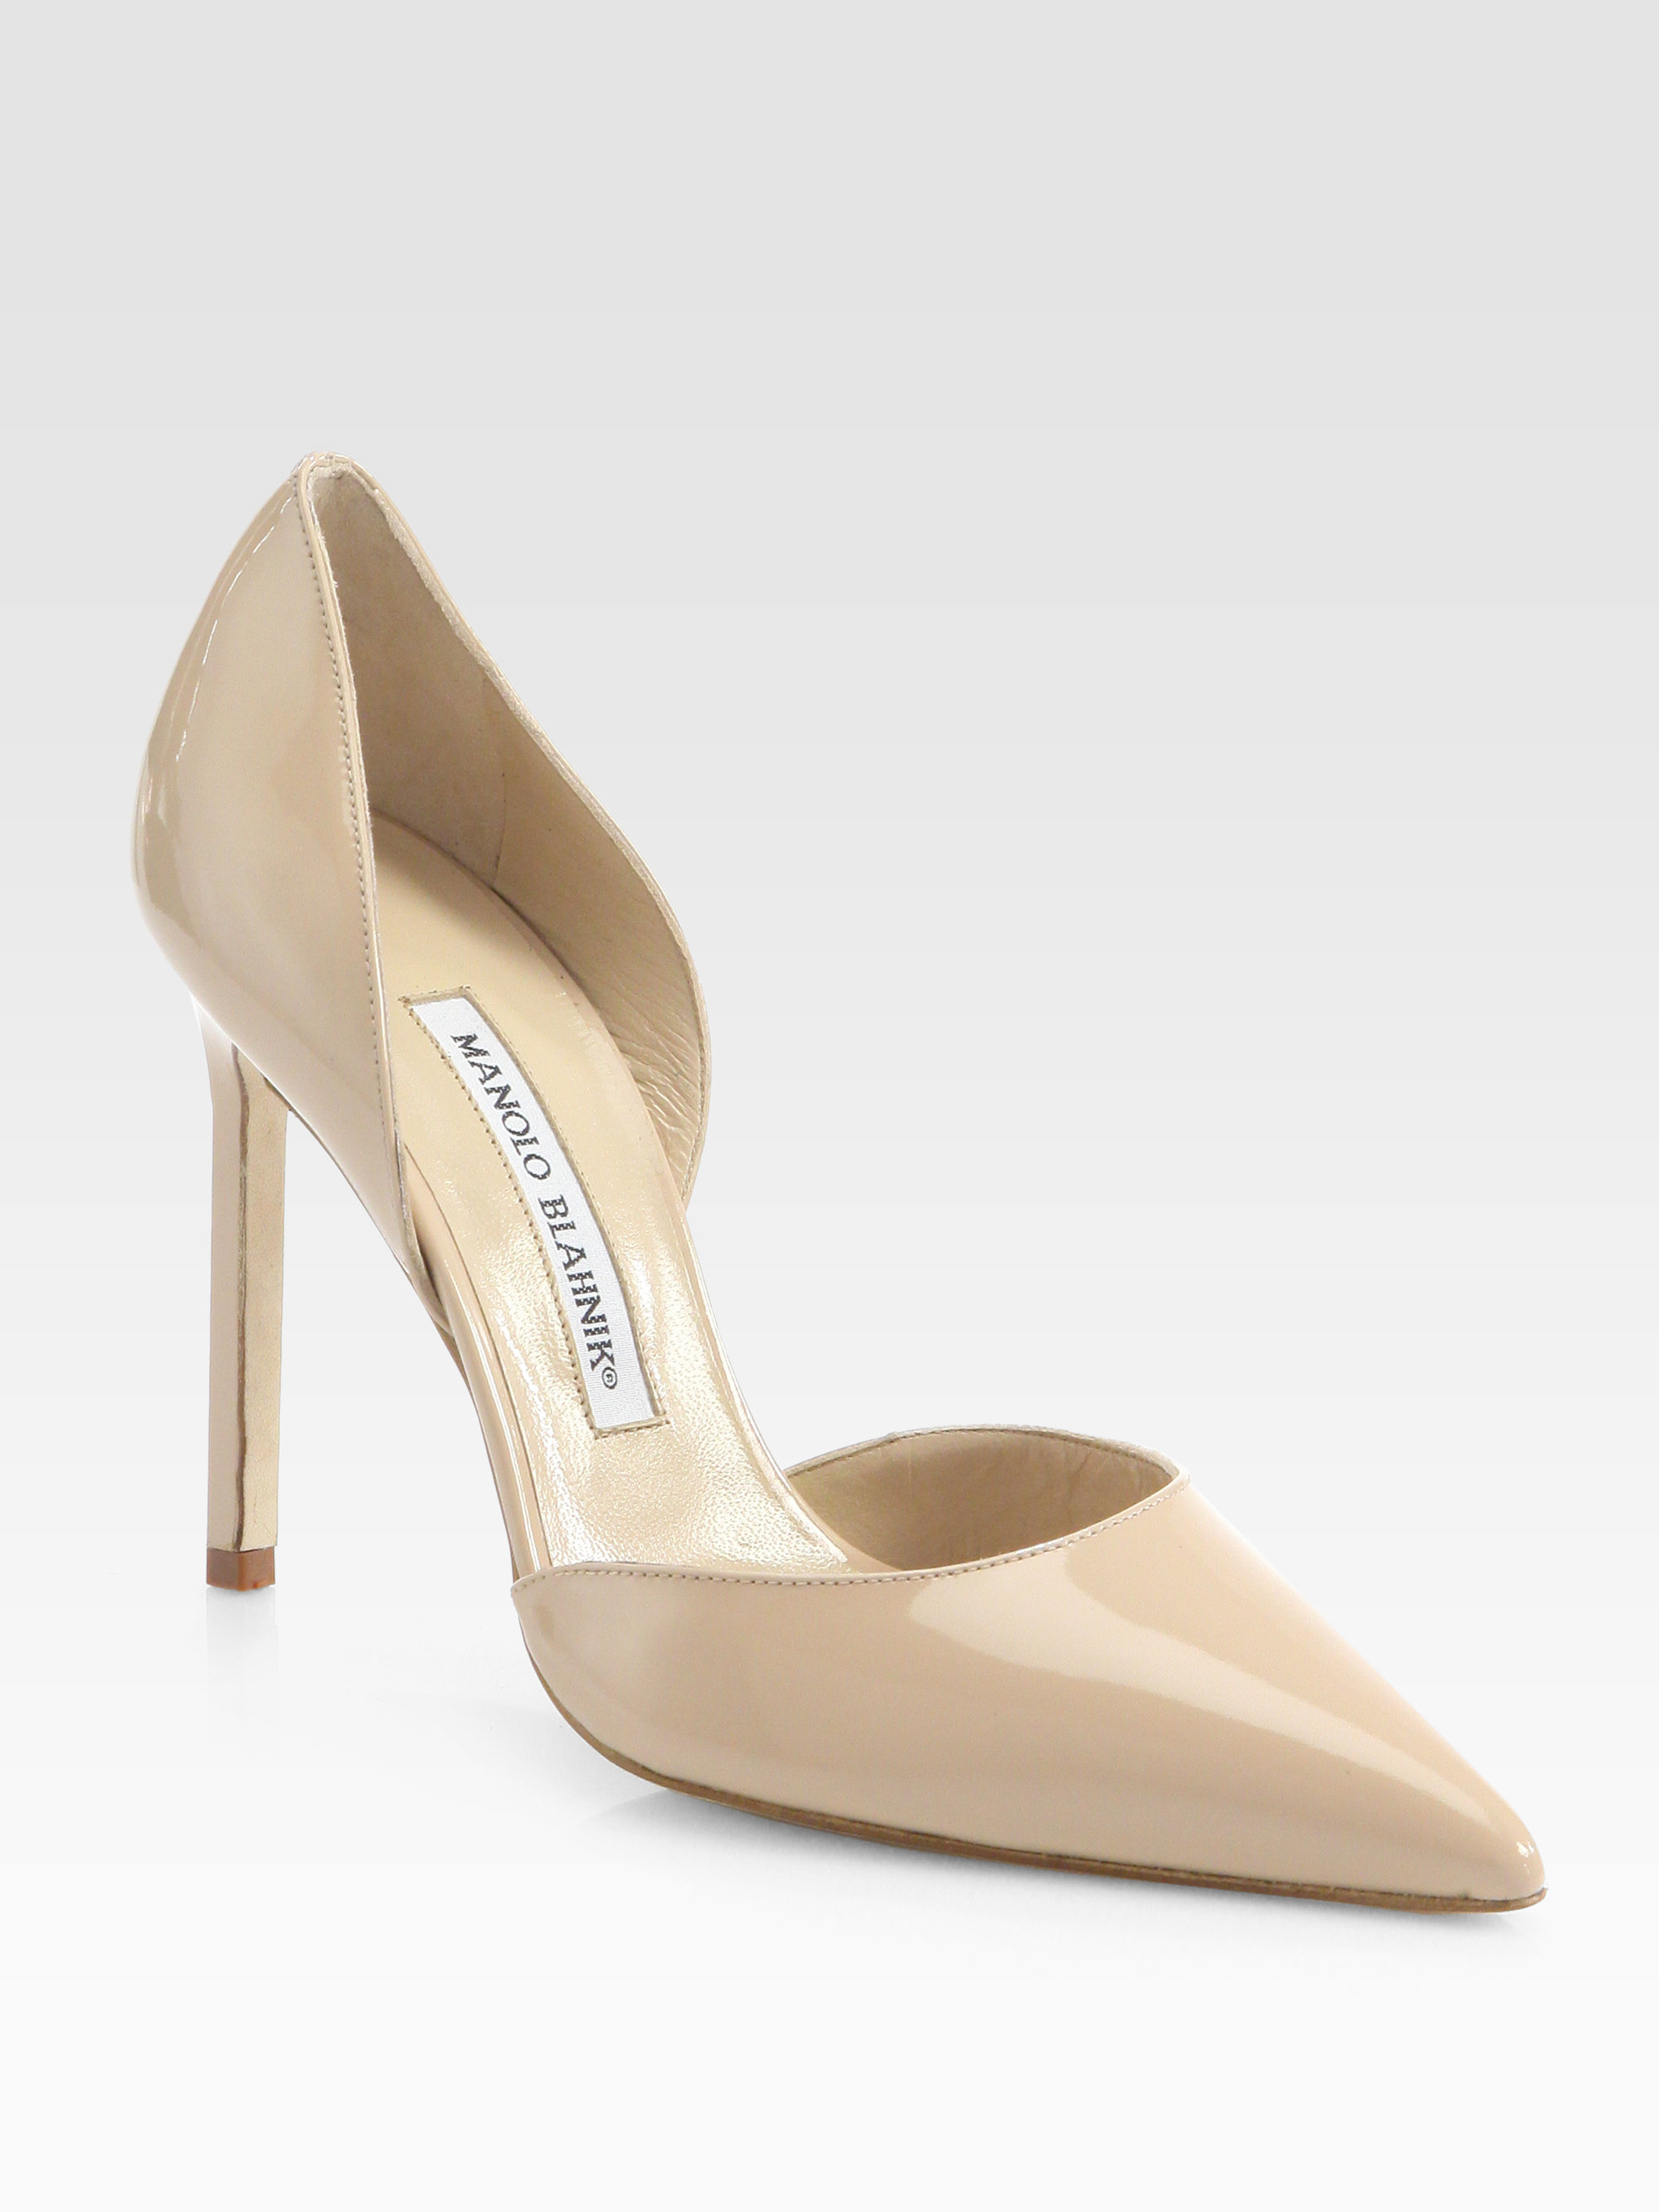 Manolo blahnik tayler patent leather d orsay pumps in natural lyst